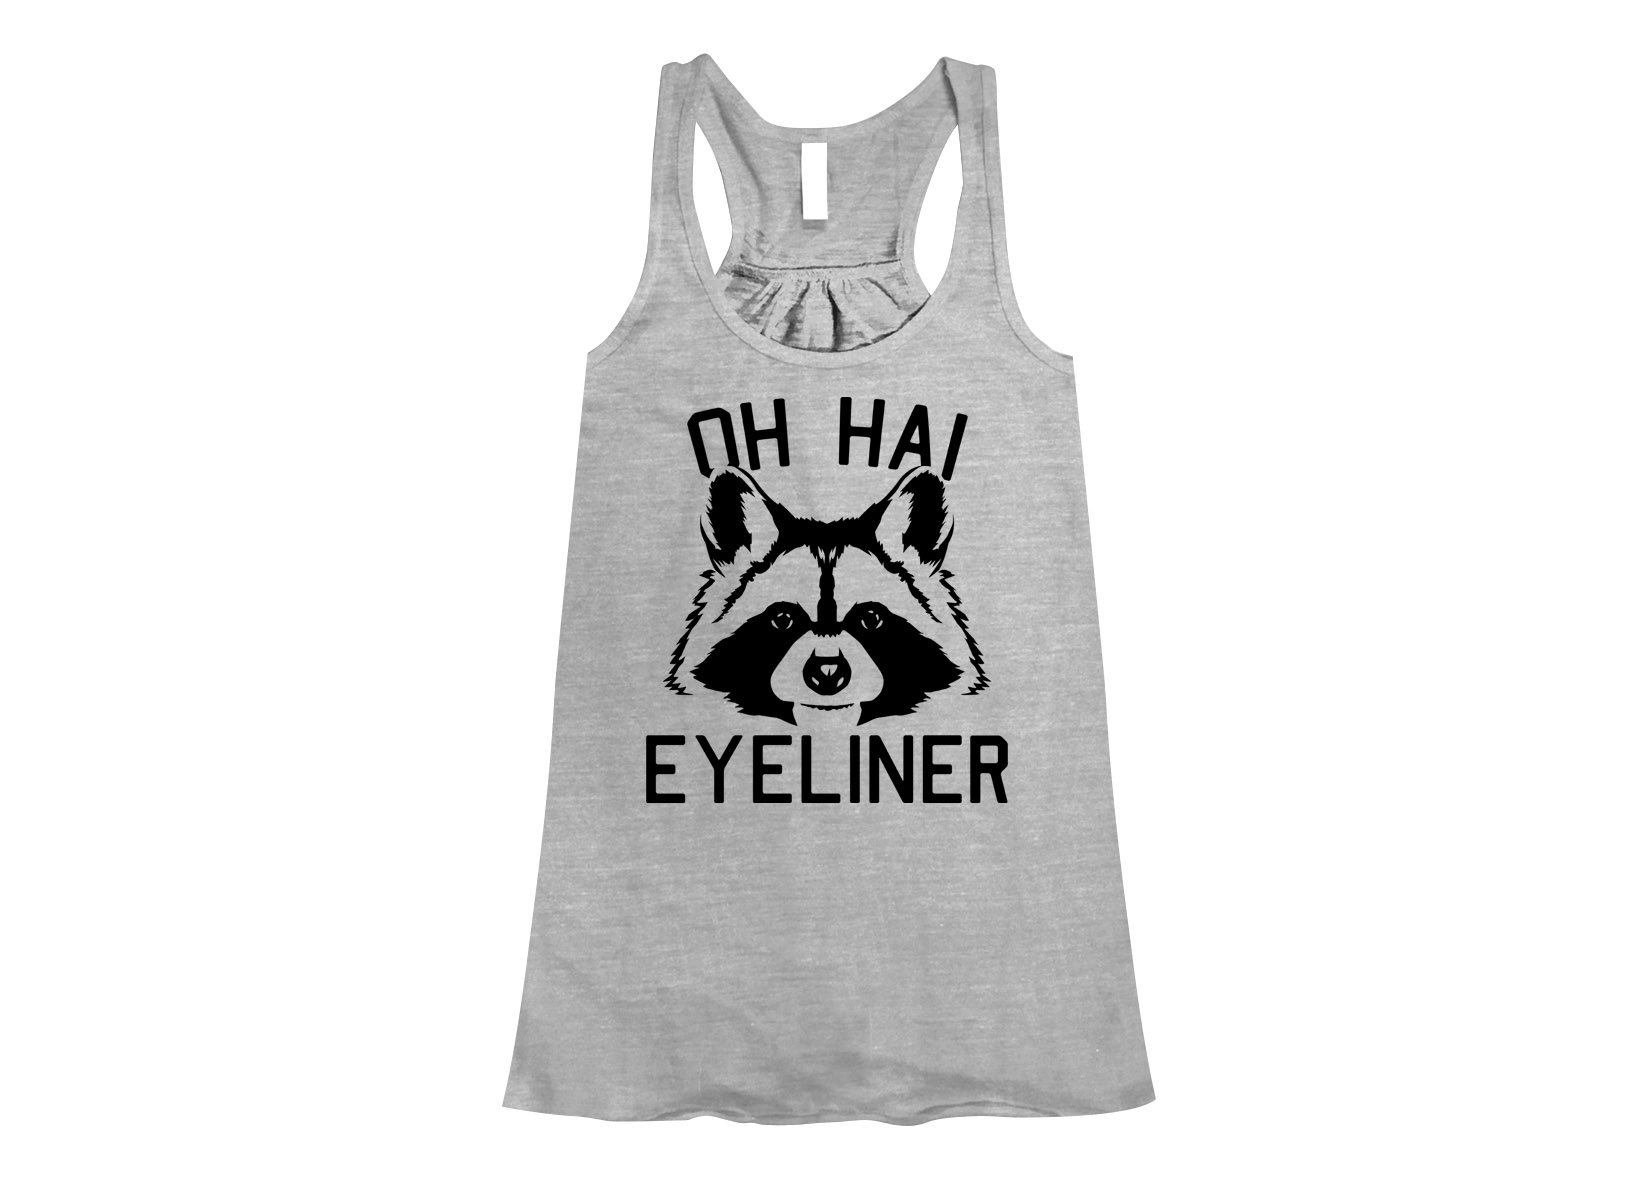 Oh Hai Eyeliner on Womens Tanks T-Shirt